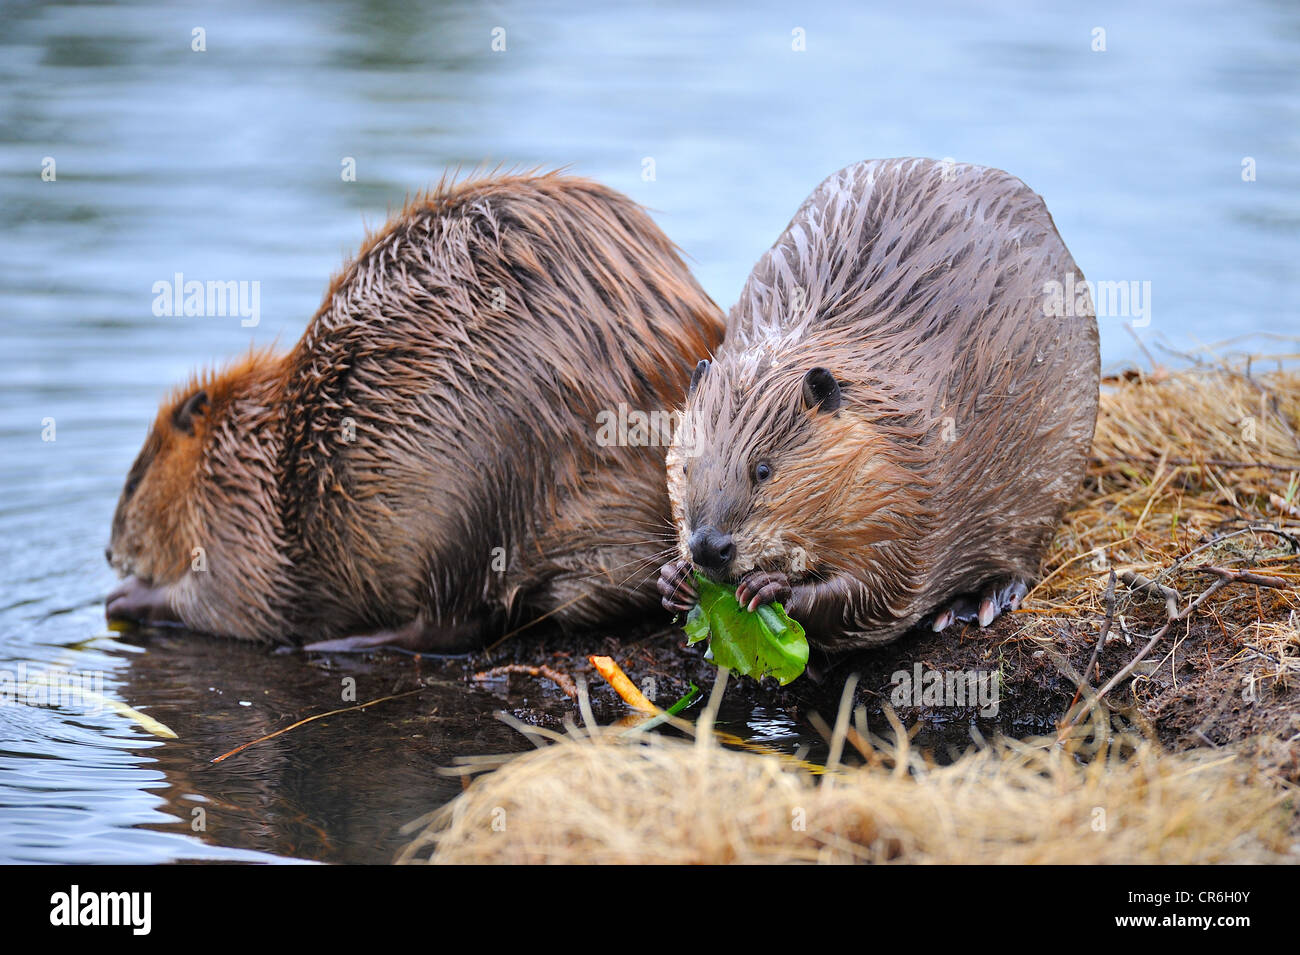 A horizontal image of 2 beavers feeding on some fresh green water lily pads - Stock Image